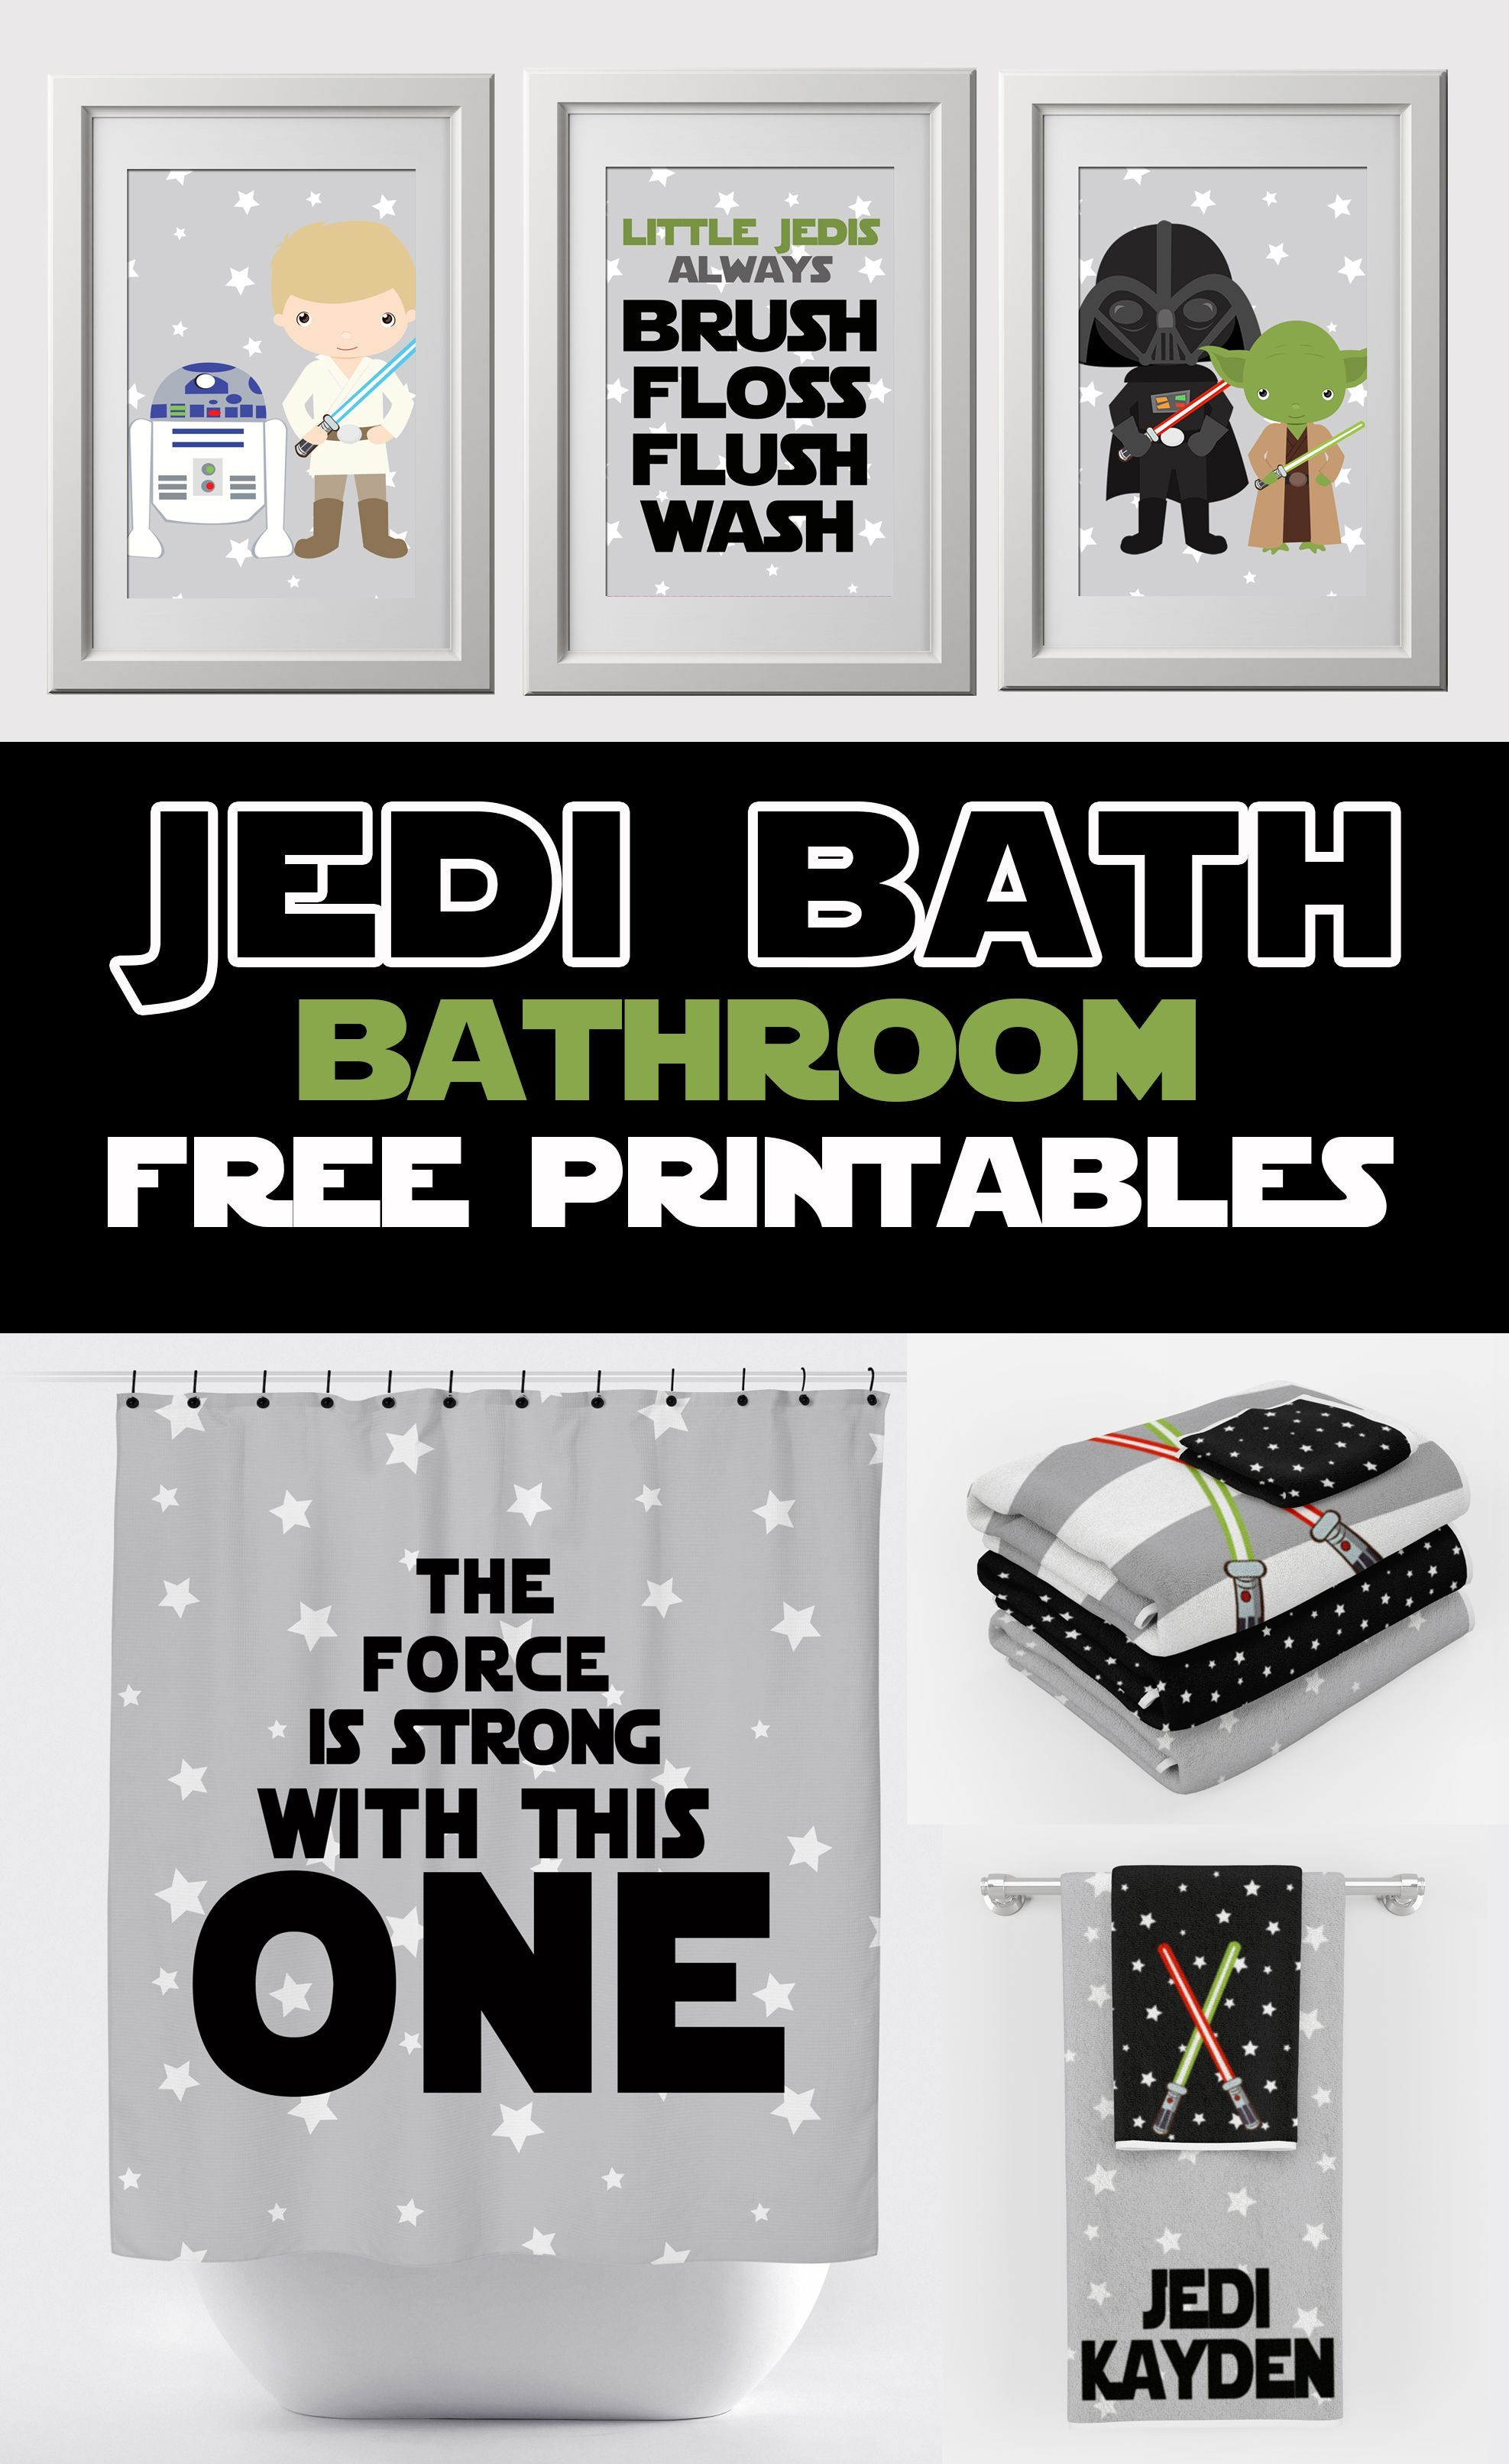 The Force Is Strong With This Bathroom Cute Star Wars Free Bathroom Wall Prints And Matchin Star Wars Bathroom Decor Star Wars Bathroom Kids Bathroom Wall Art